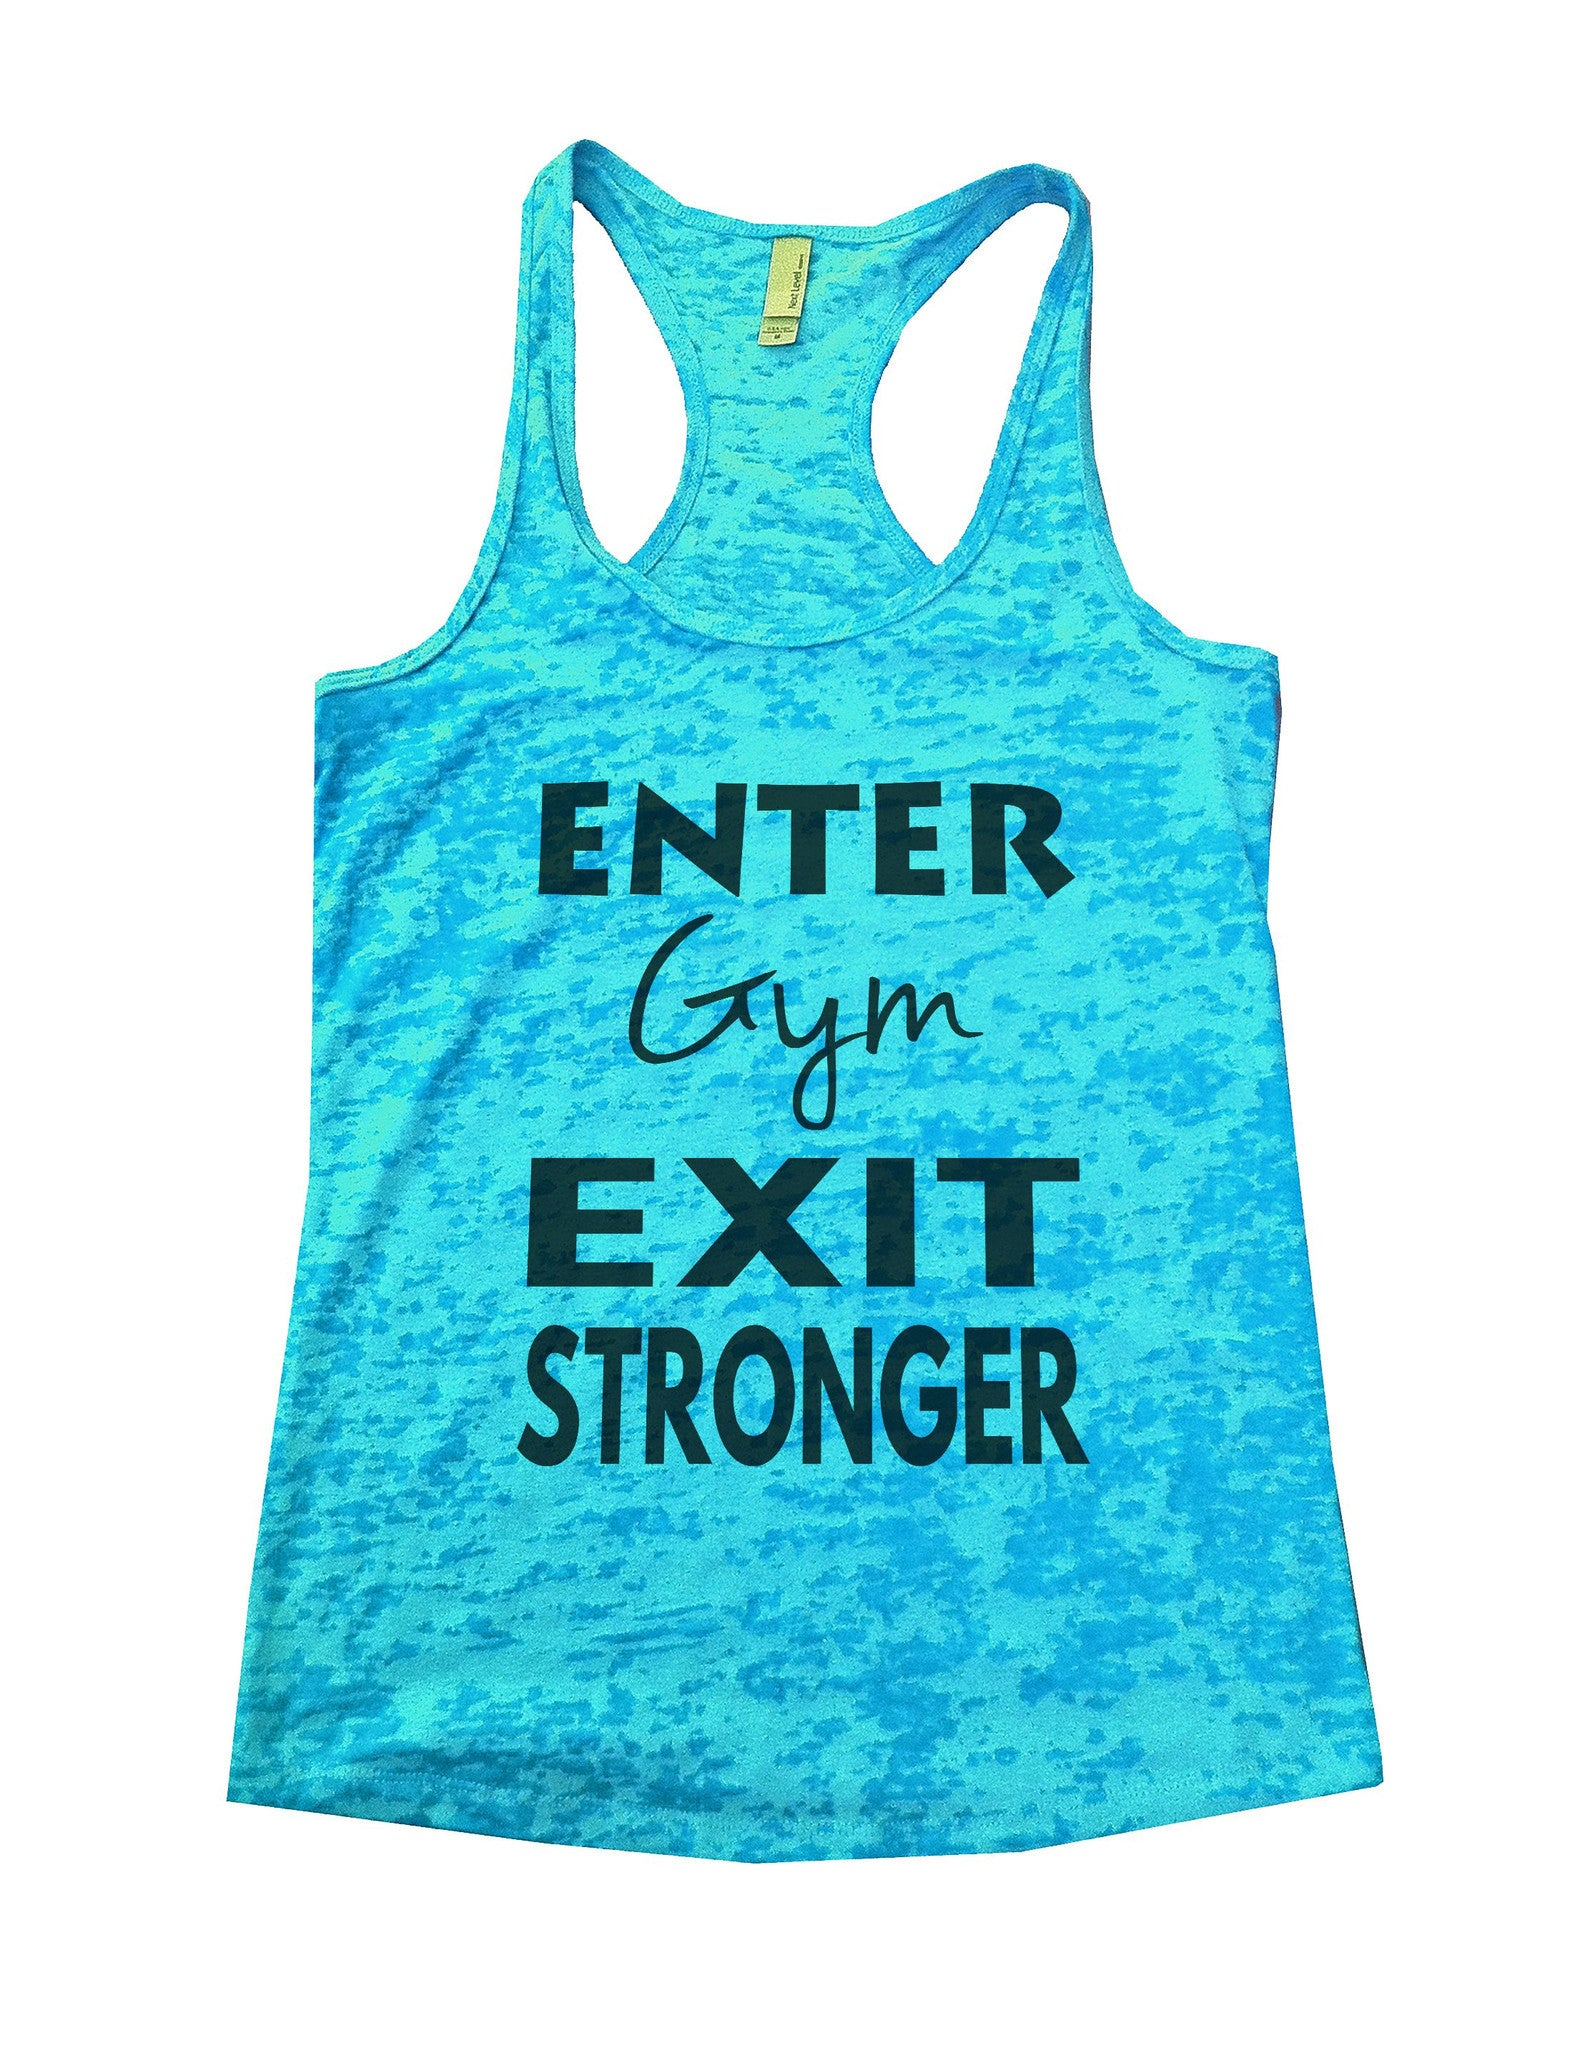 Enter Gym Exit Stronger Burnout Tank Top By BurnoutTankTops.com - 853 - Funny Shirts Tank Tops Burnouts and Triblends  - 4